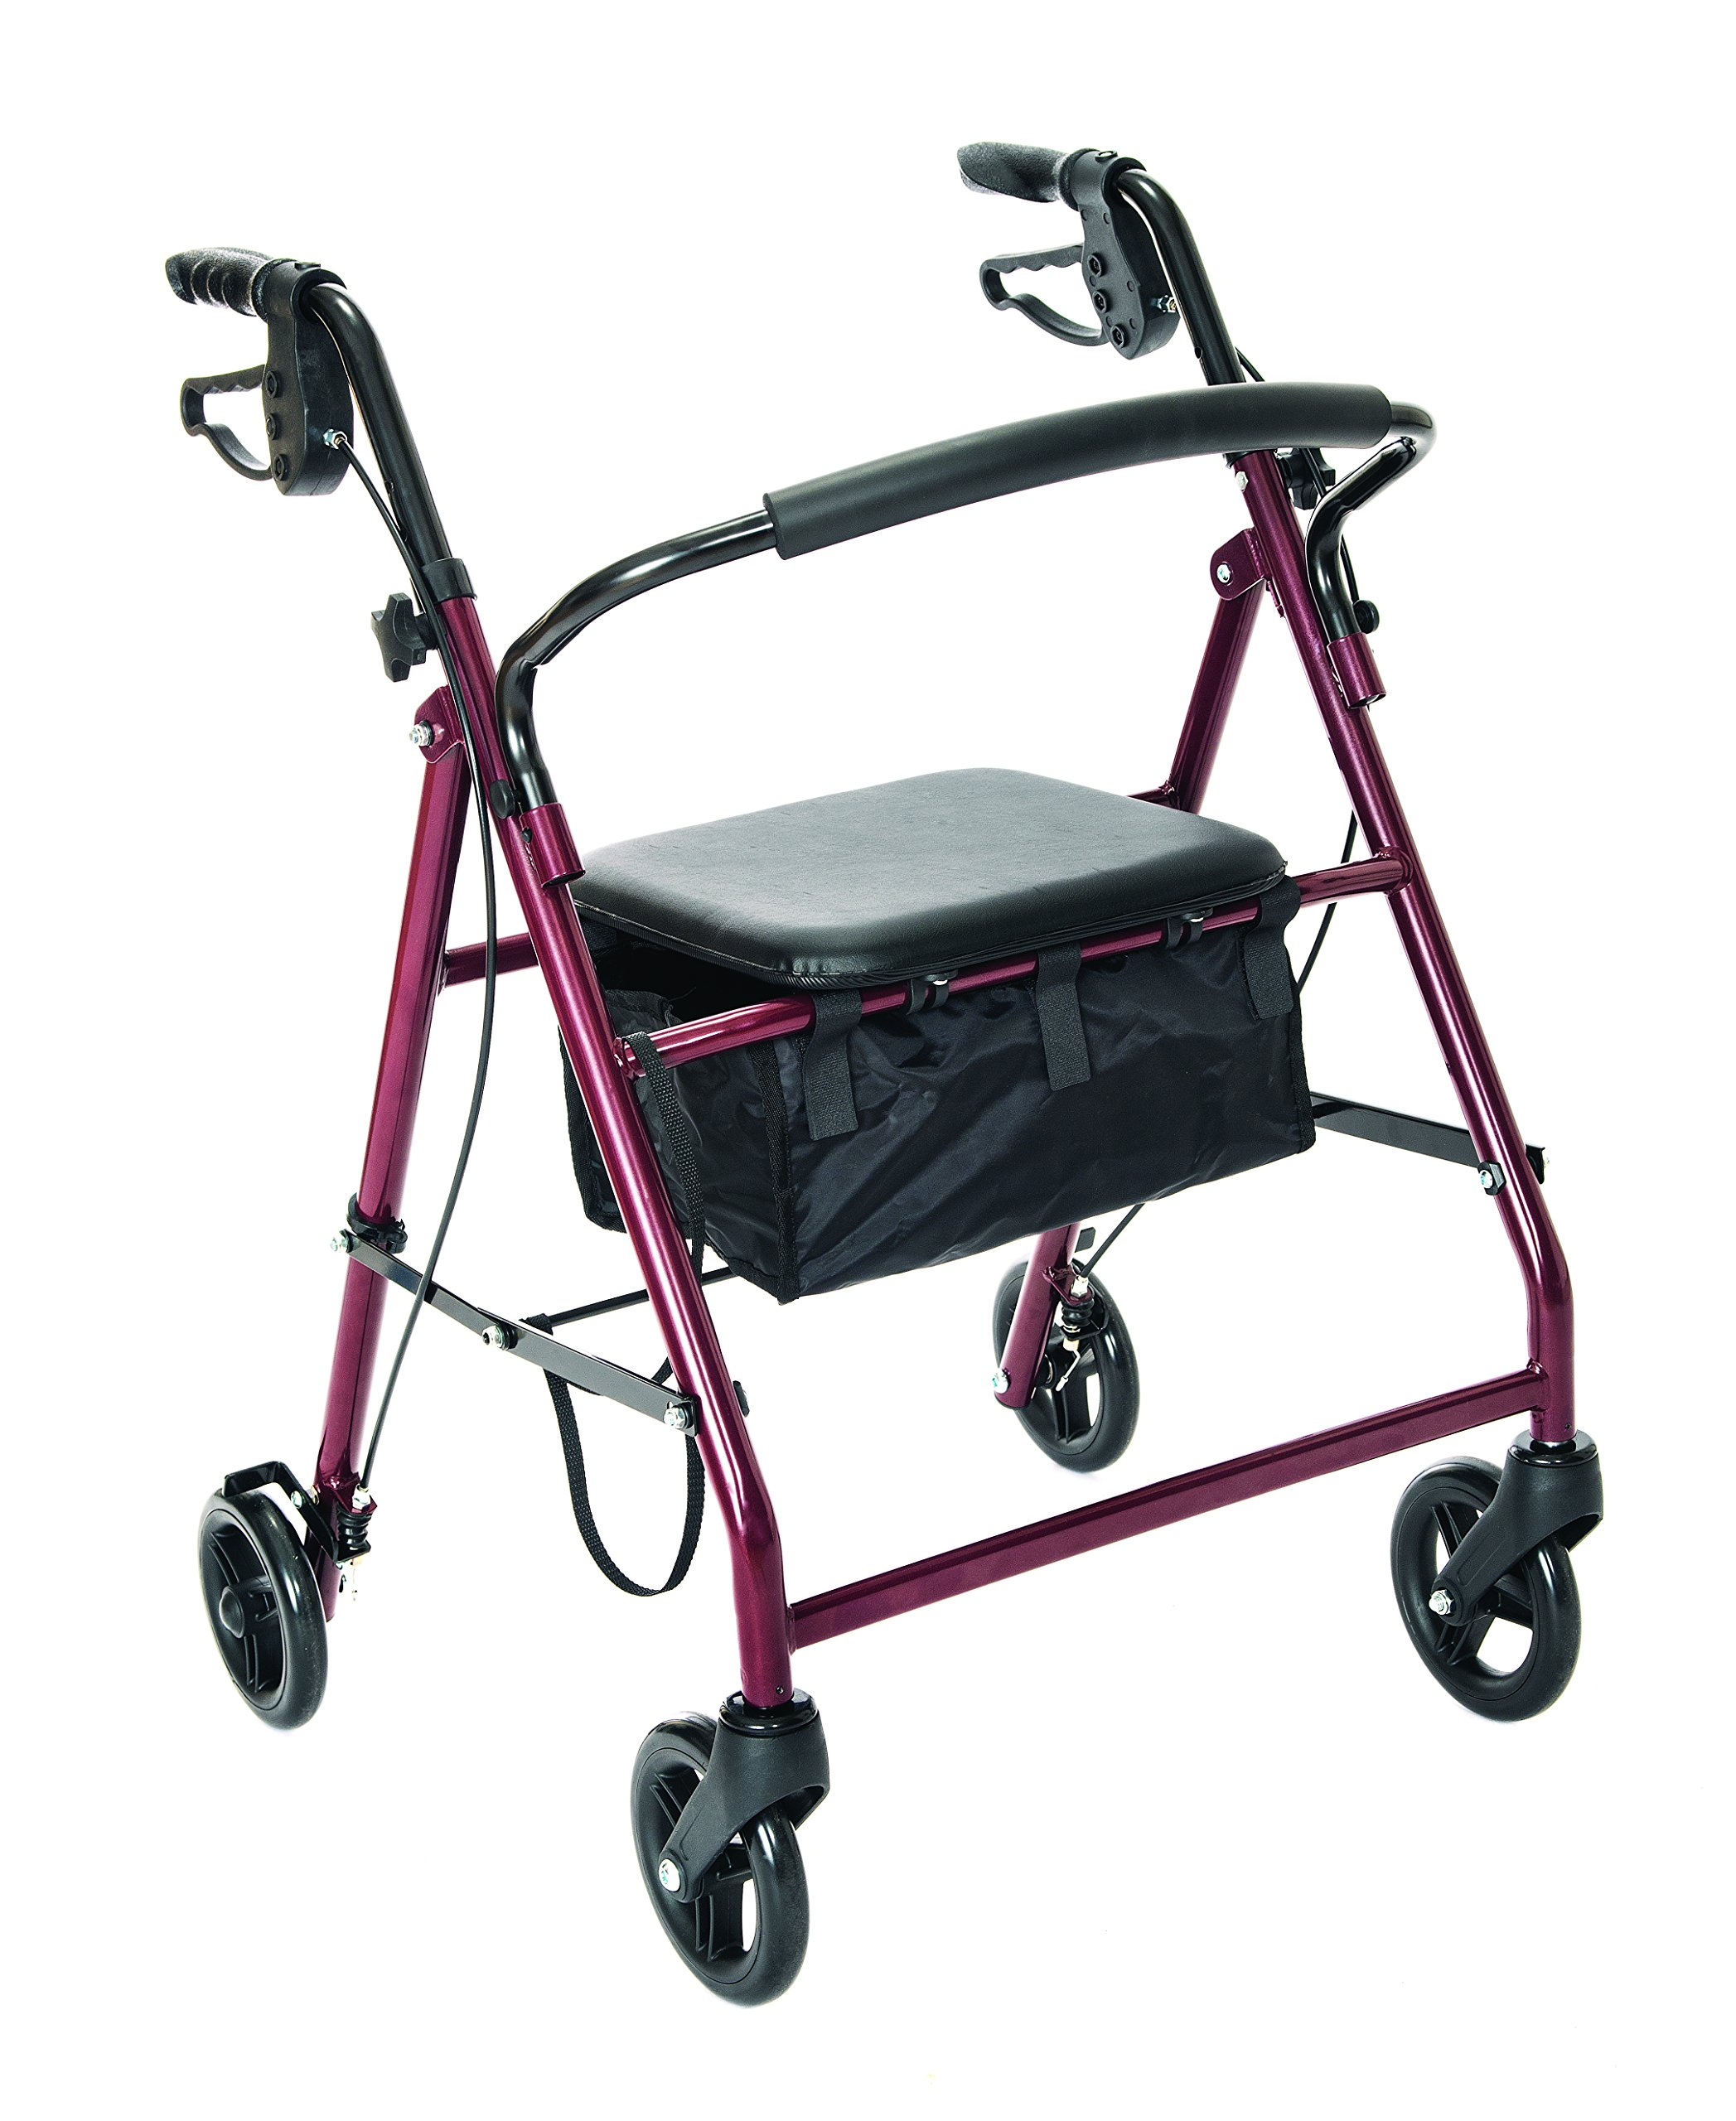 Essential Medical Supply Essential Rollator with Loop Brakes and Wheels, Red by Essential Medical Supply (Image #1)